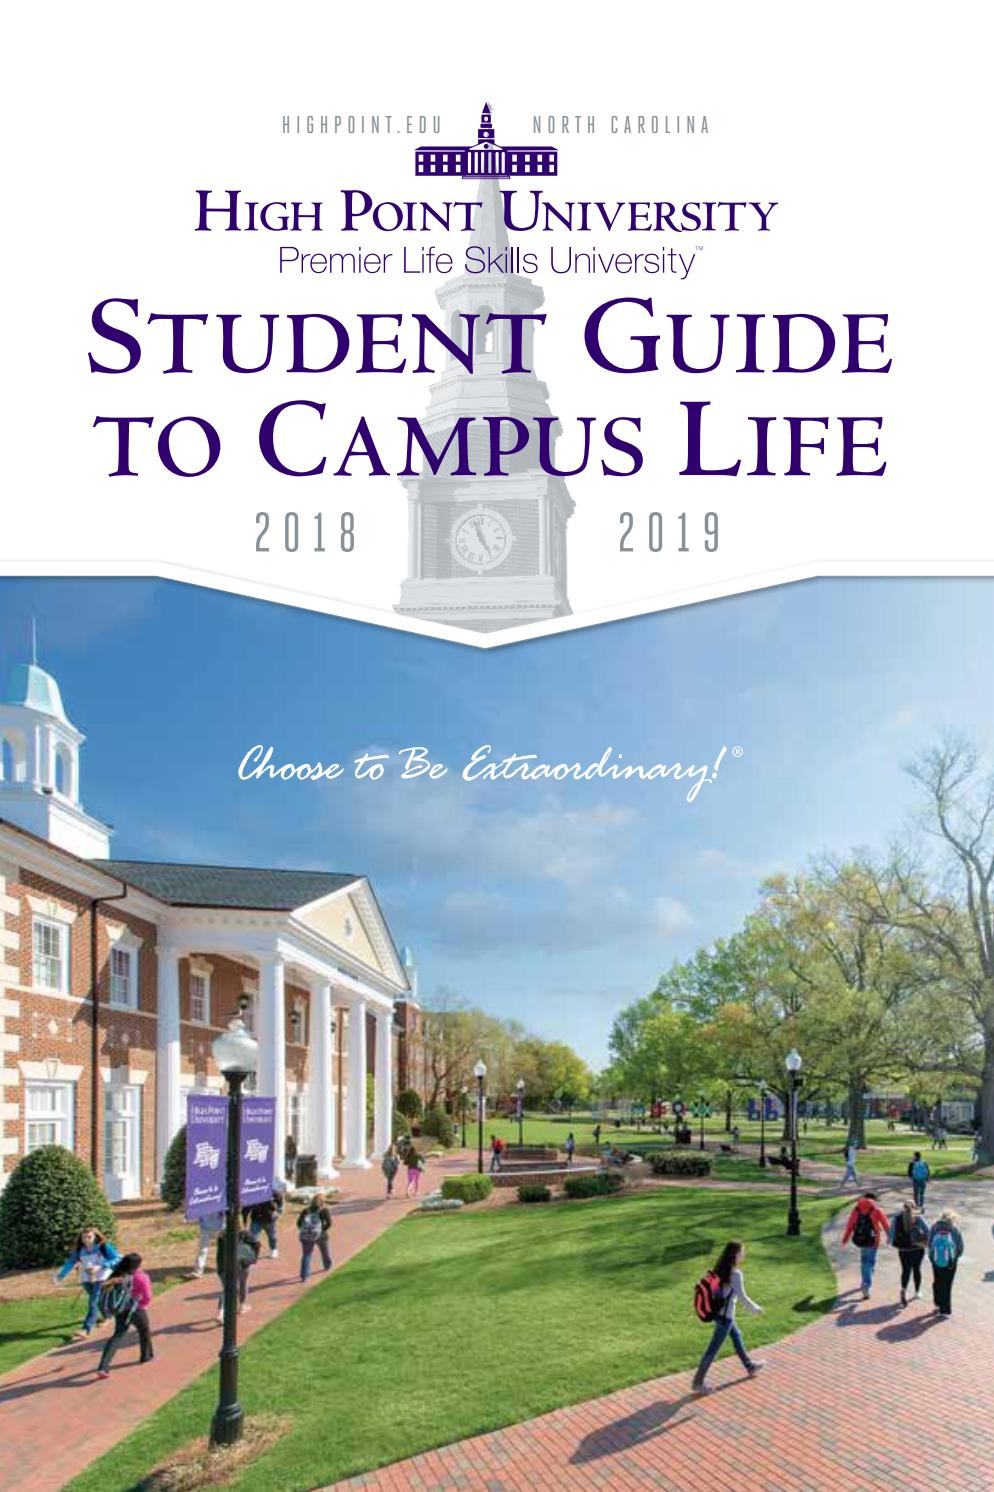 HPU Student Guide to Campus Life 2018-2019 by High Point